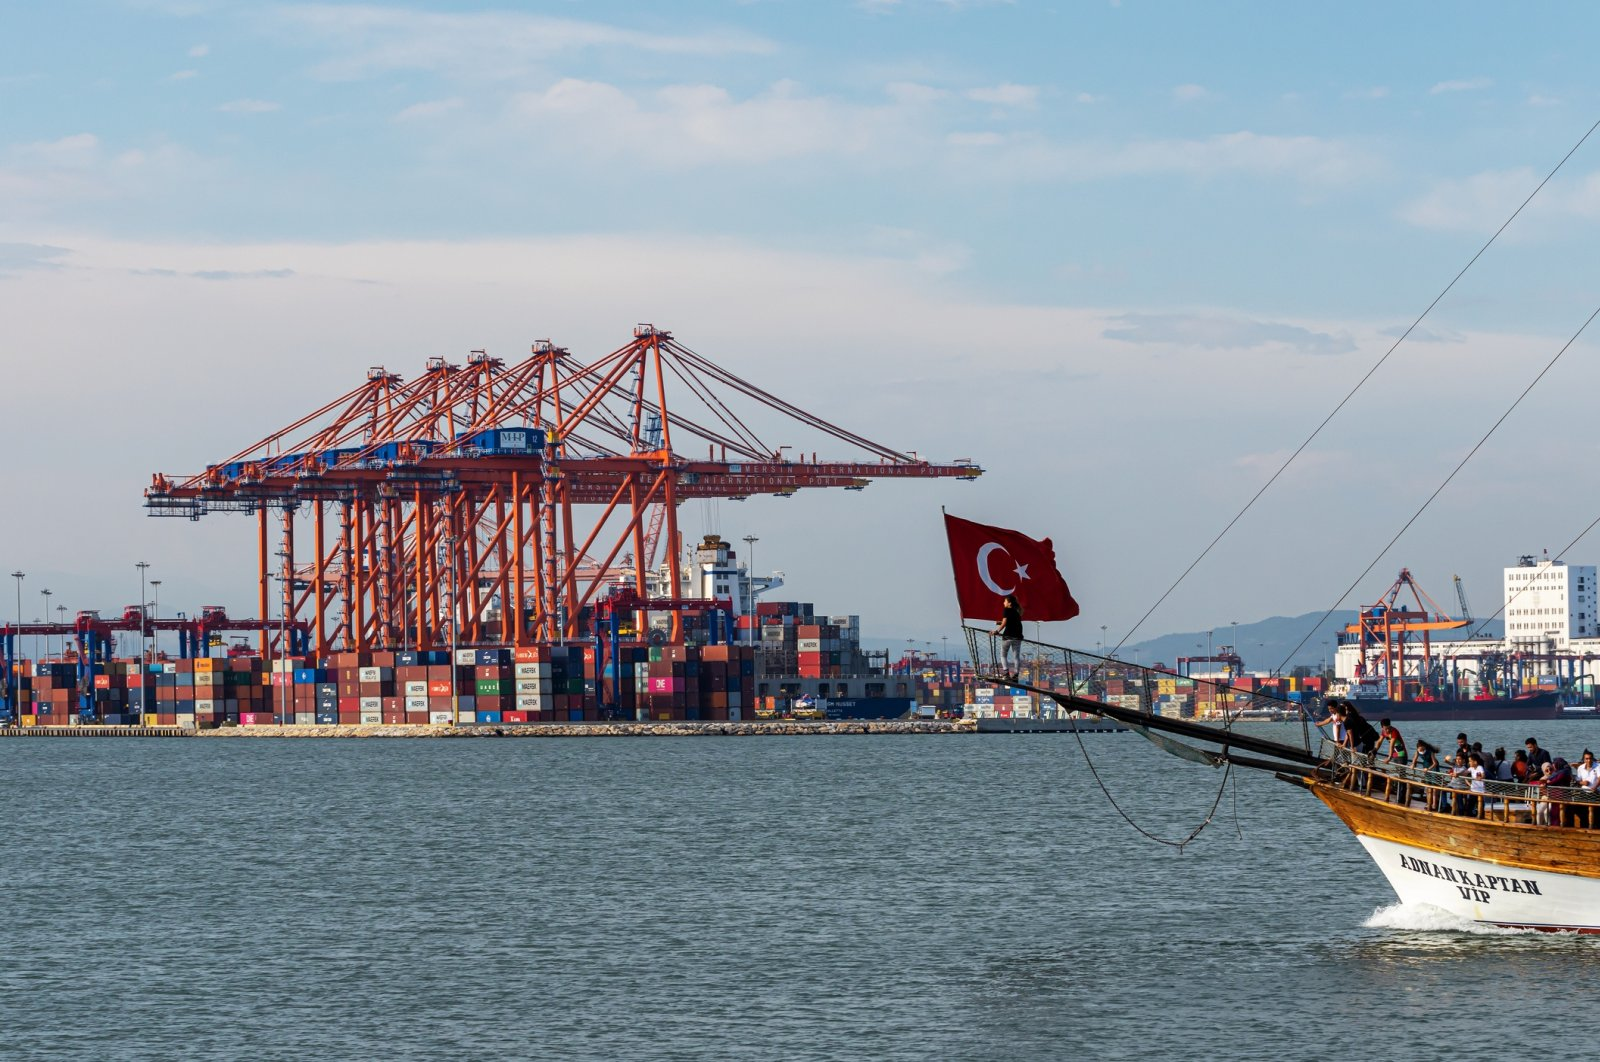 Containers at the Mersin International Port (MIP) in southern Mersin province, Turkey, June 14, 2020. (Shutterstock Photo by Can Aran)